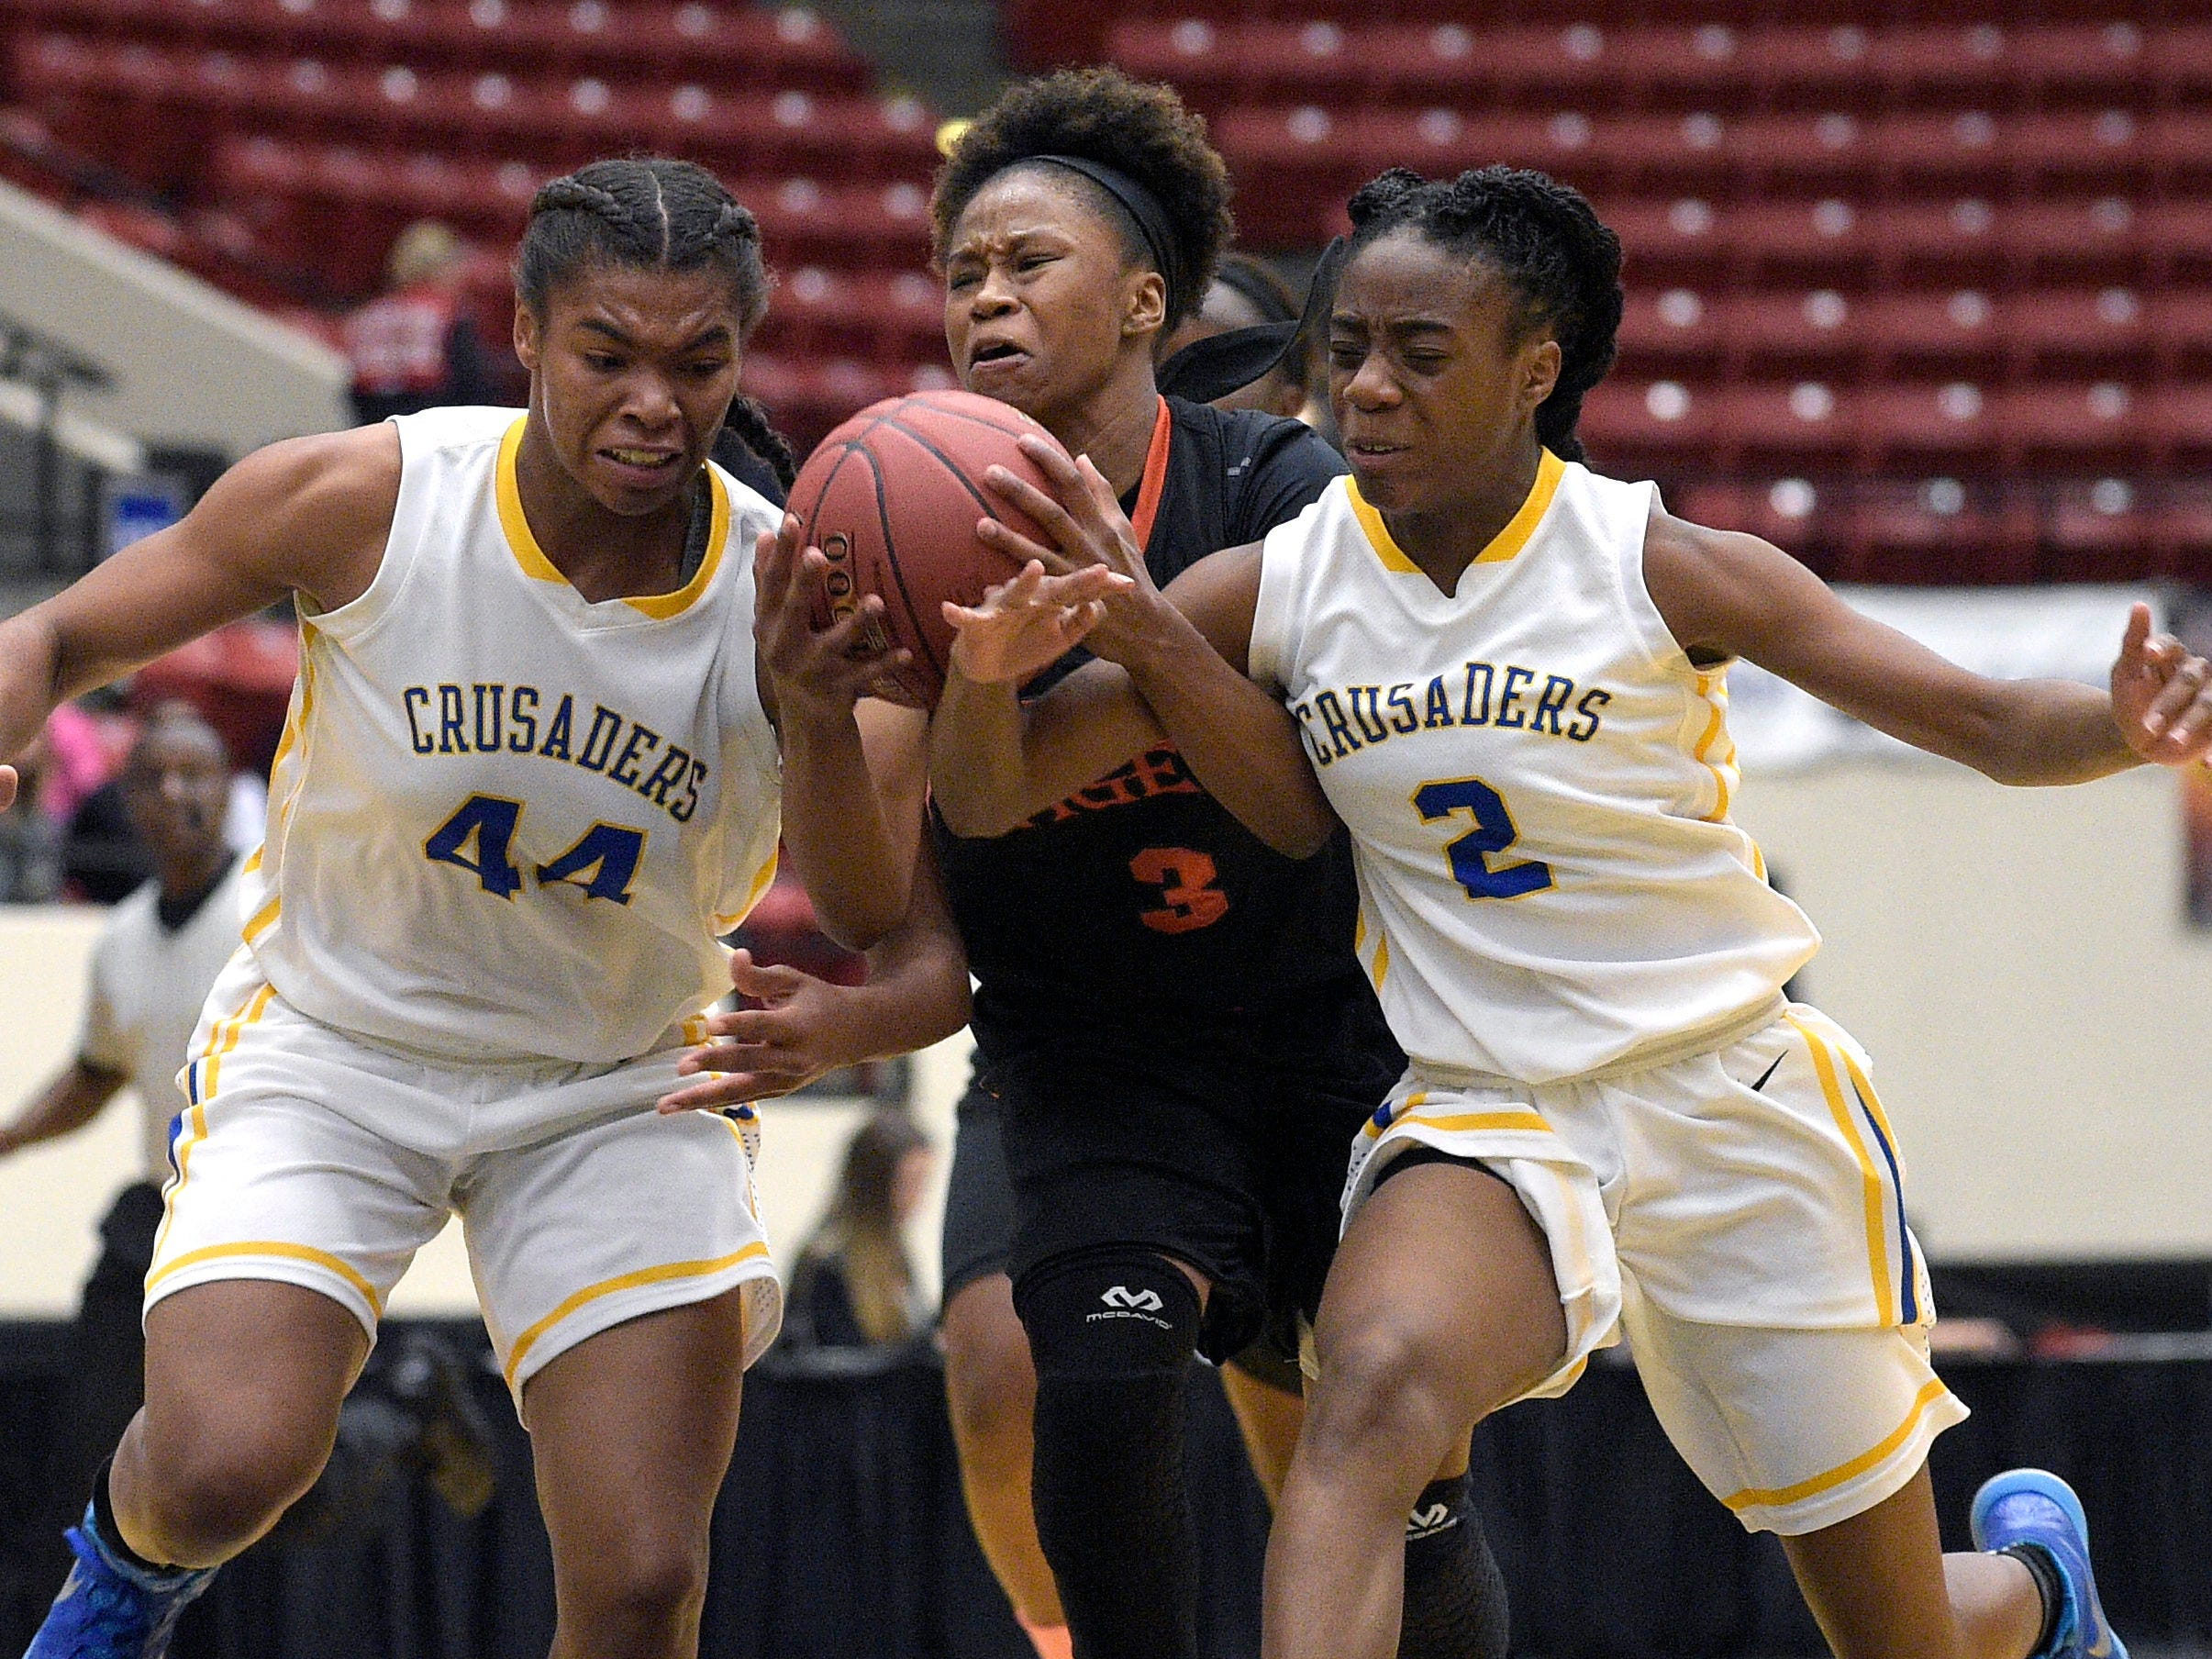 Dunbar's Keri Jewett (3) is fouled by Cardinal Newman's Anise Williams (2), while driving to the basket between Williams and Tytionia Adderly (44) during a girls basketball game at the FHSAA State Finals, Tuesday, Feb. 17, 2015, in Lakeland, Fla.(Photo/Phelan M. Ebenhack)